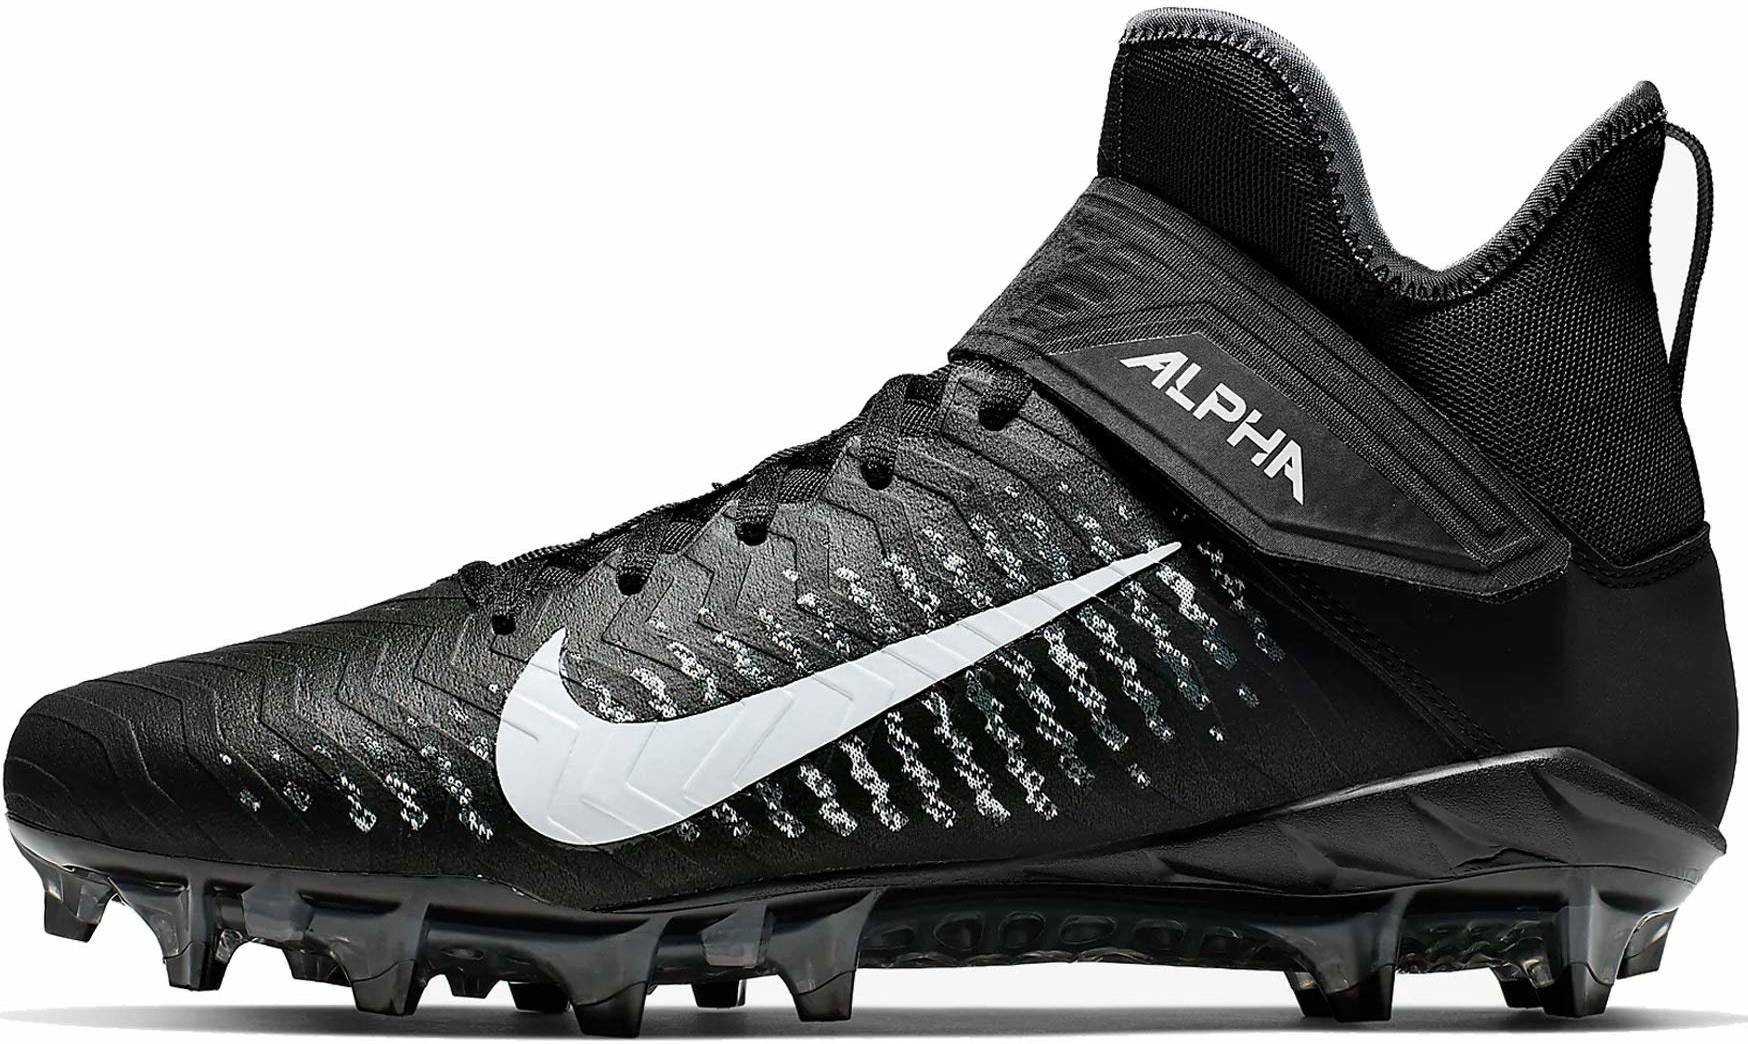 affordable football cleats